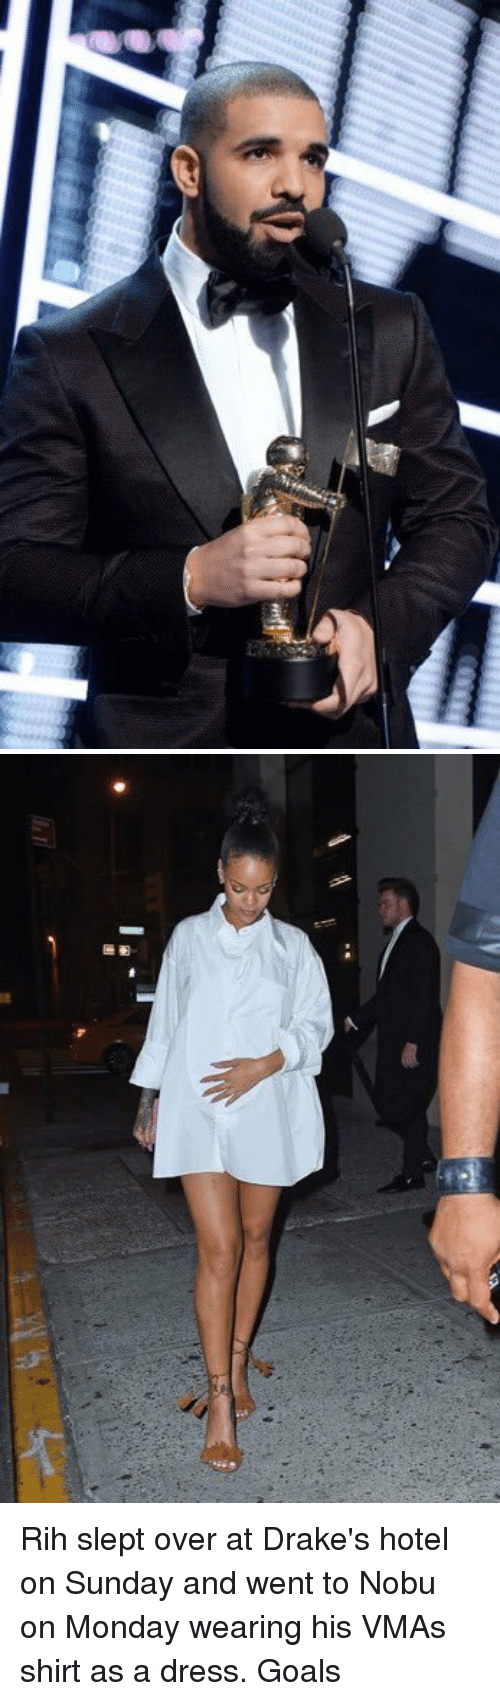 Drake, Goals, and Mondays: rif   周團 Rih slept over at Drake's hotel on Sunday and went to Nobu on Monday wearing his VMAs shirt as a dress. Goals